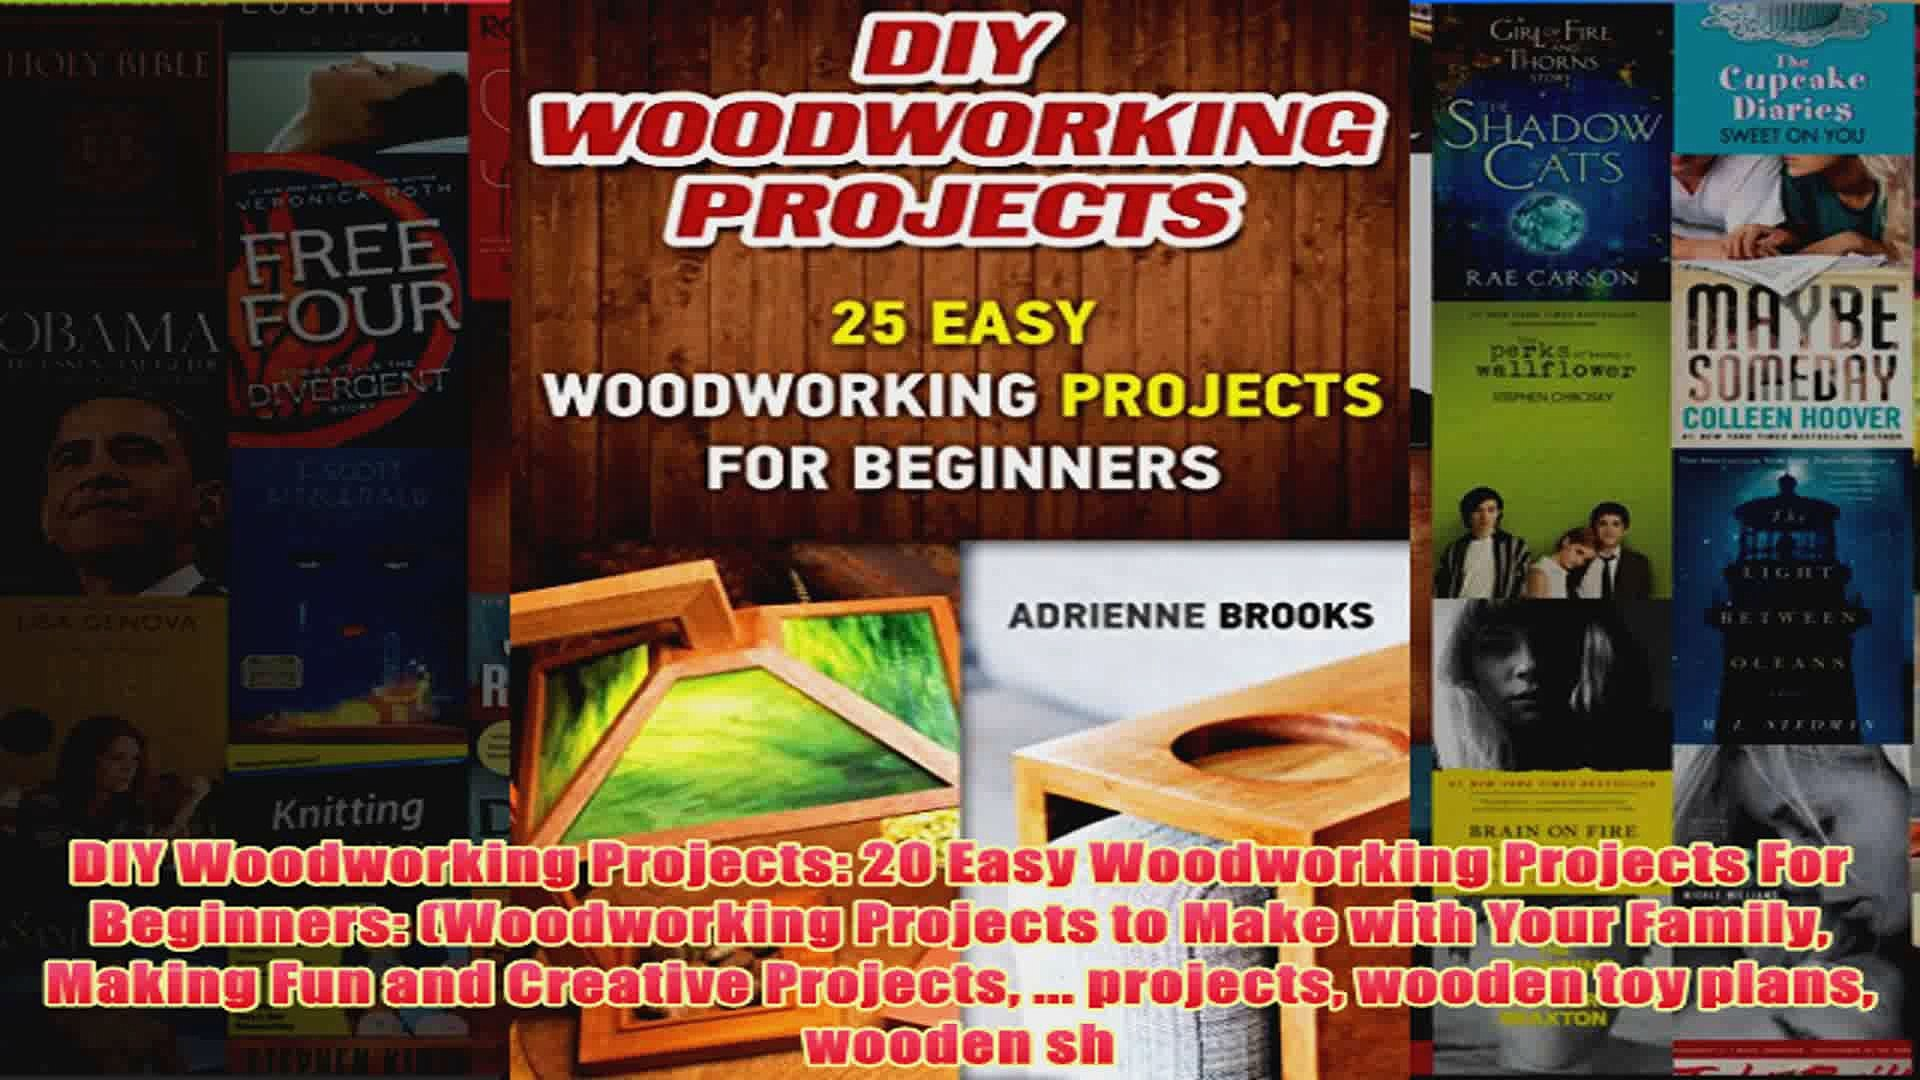 Download PDF DIY Woodworking Projects 20 Easy Woodworking Projects For Beginners Woodworking FULL FREE - video dailymotion